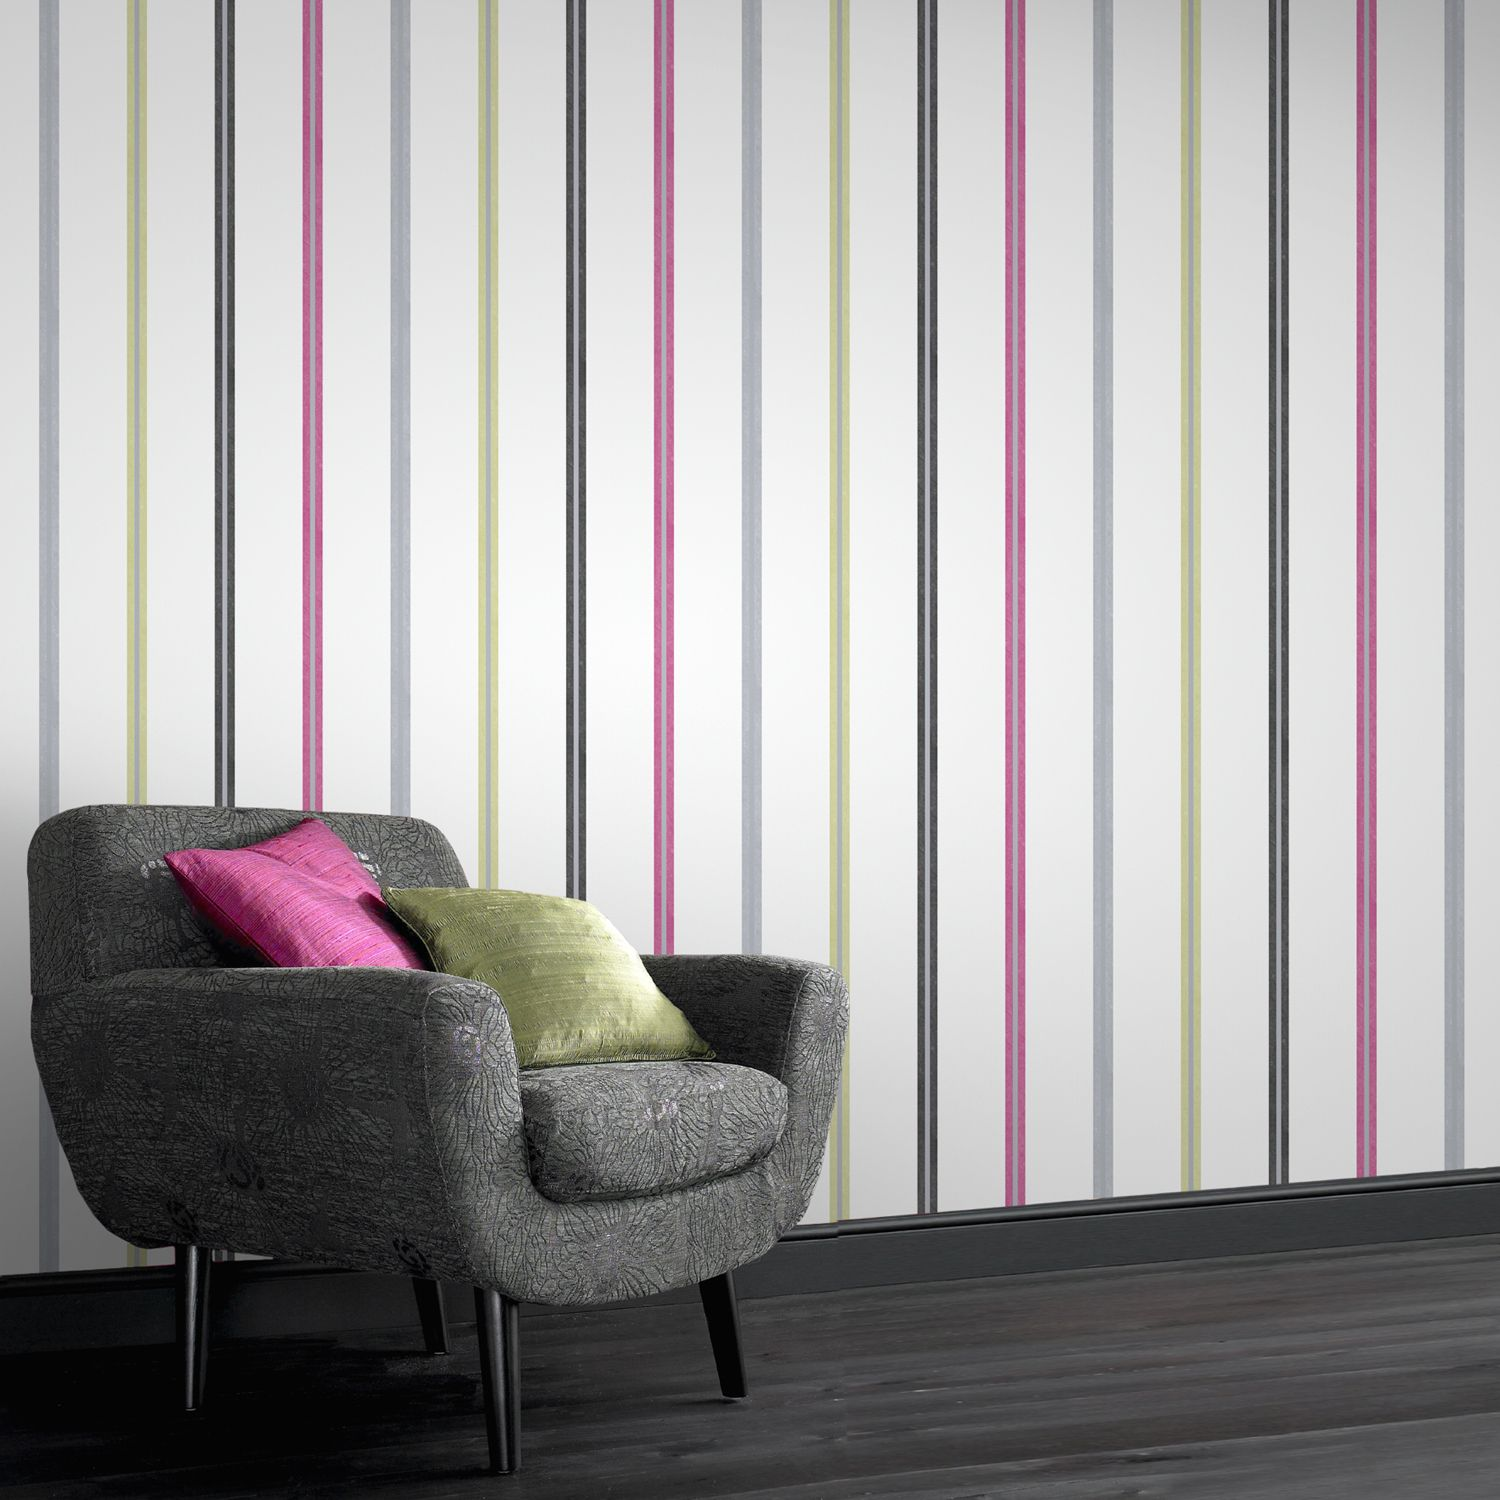 Signature Stripe Multi Coloured Wallpaper By Laurence Llewelyn